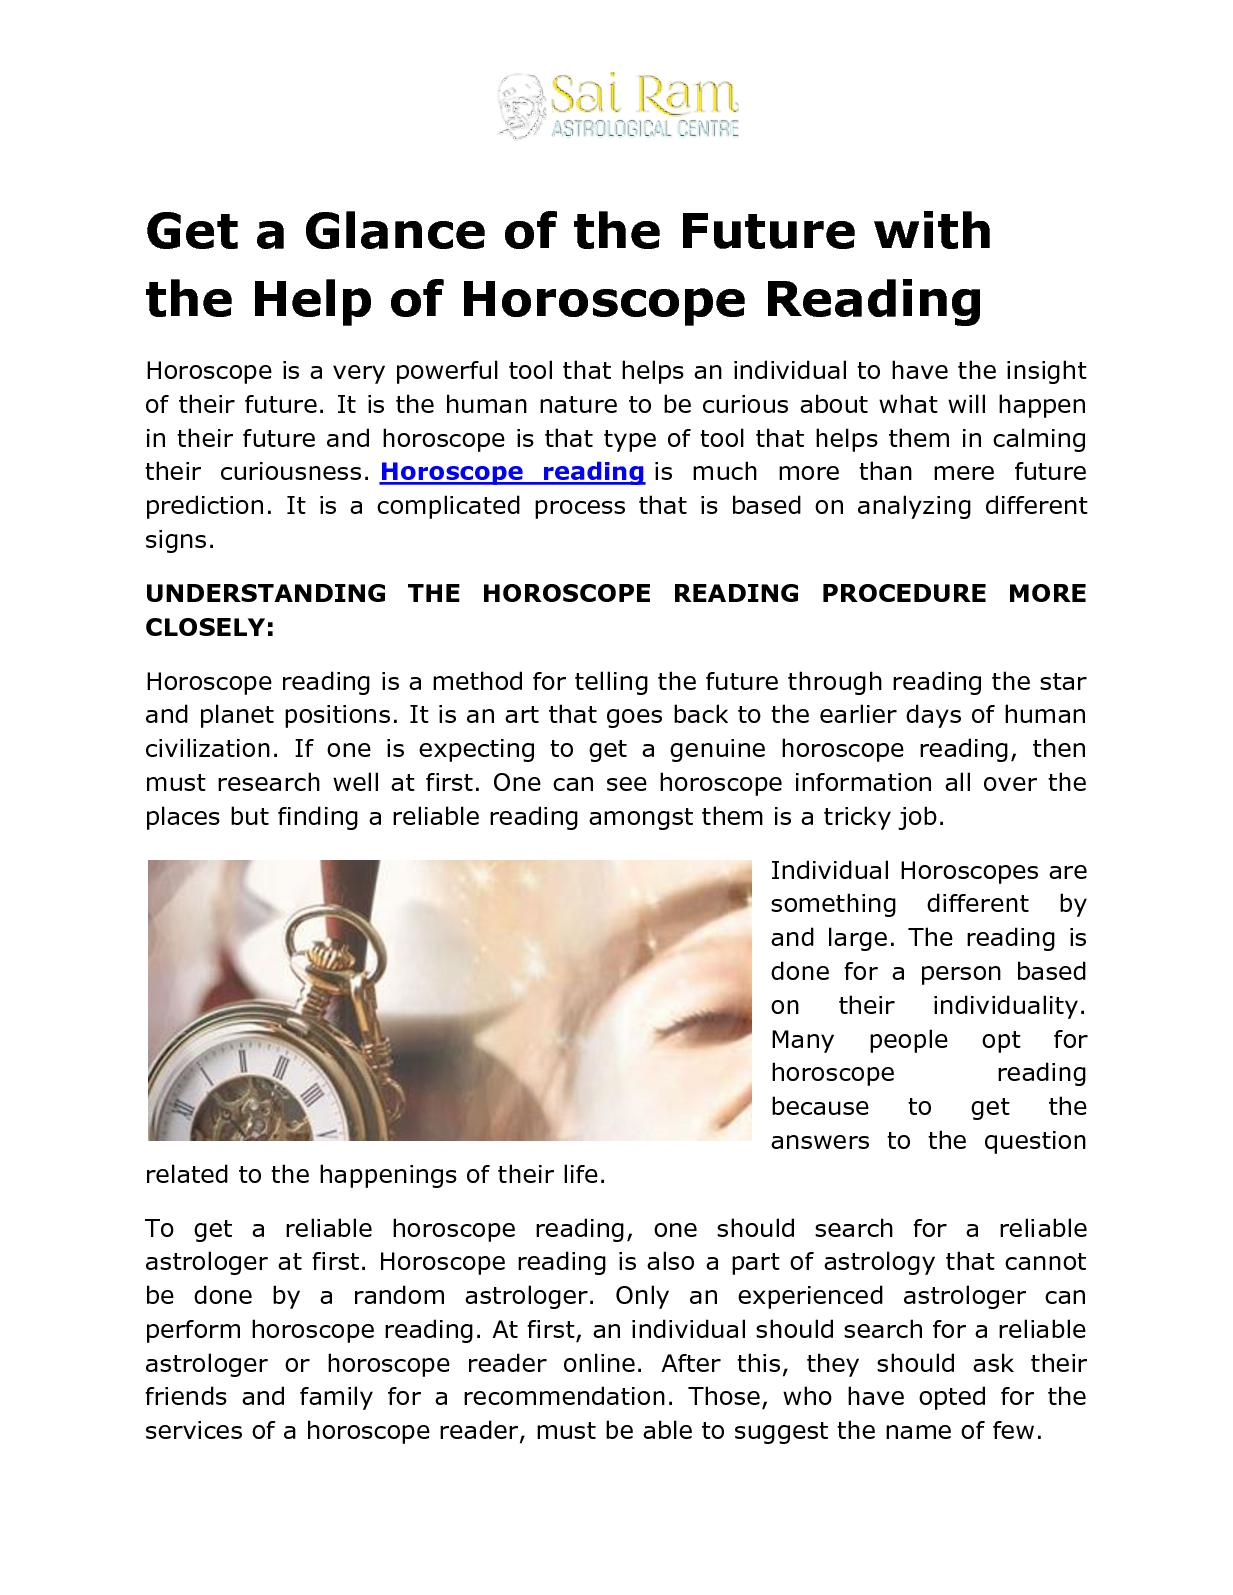 Calaméo - Get a Glance of the Future with the Help of